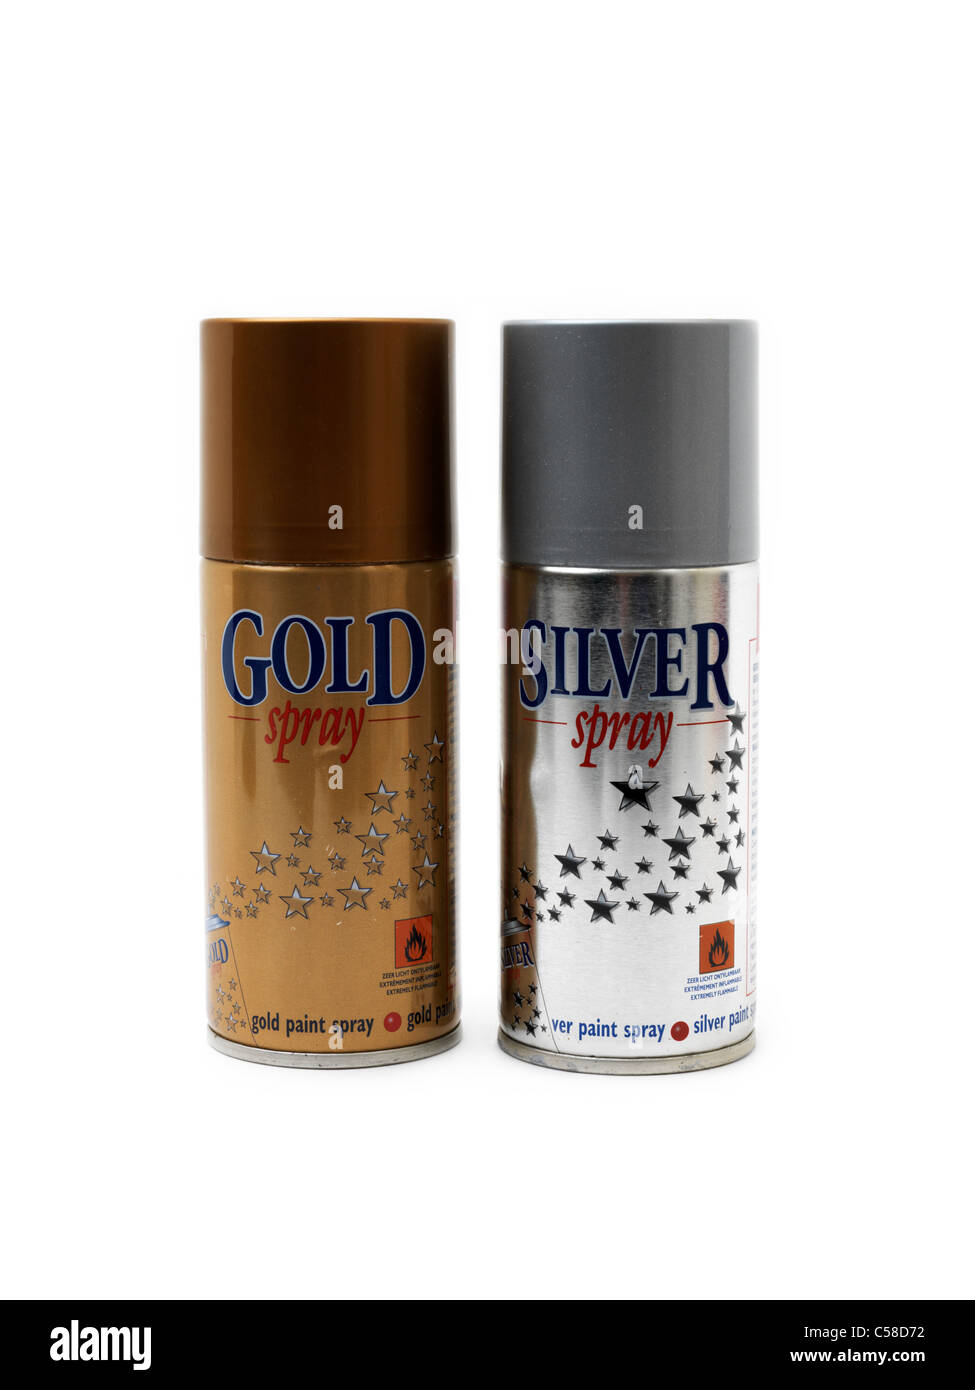 Silver And Gold Spray Paint Sometimes Used As An Inhalant - Stock Image